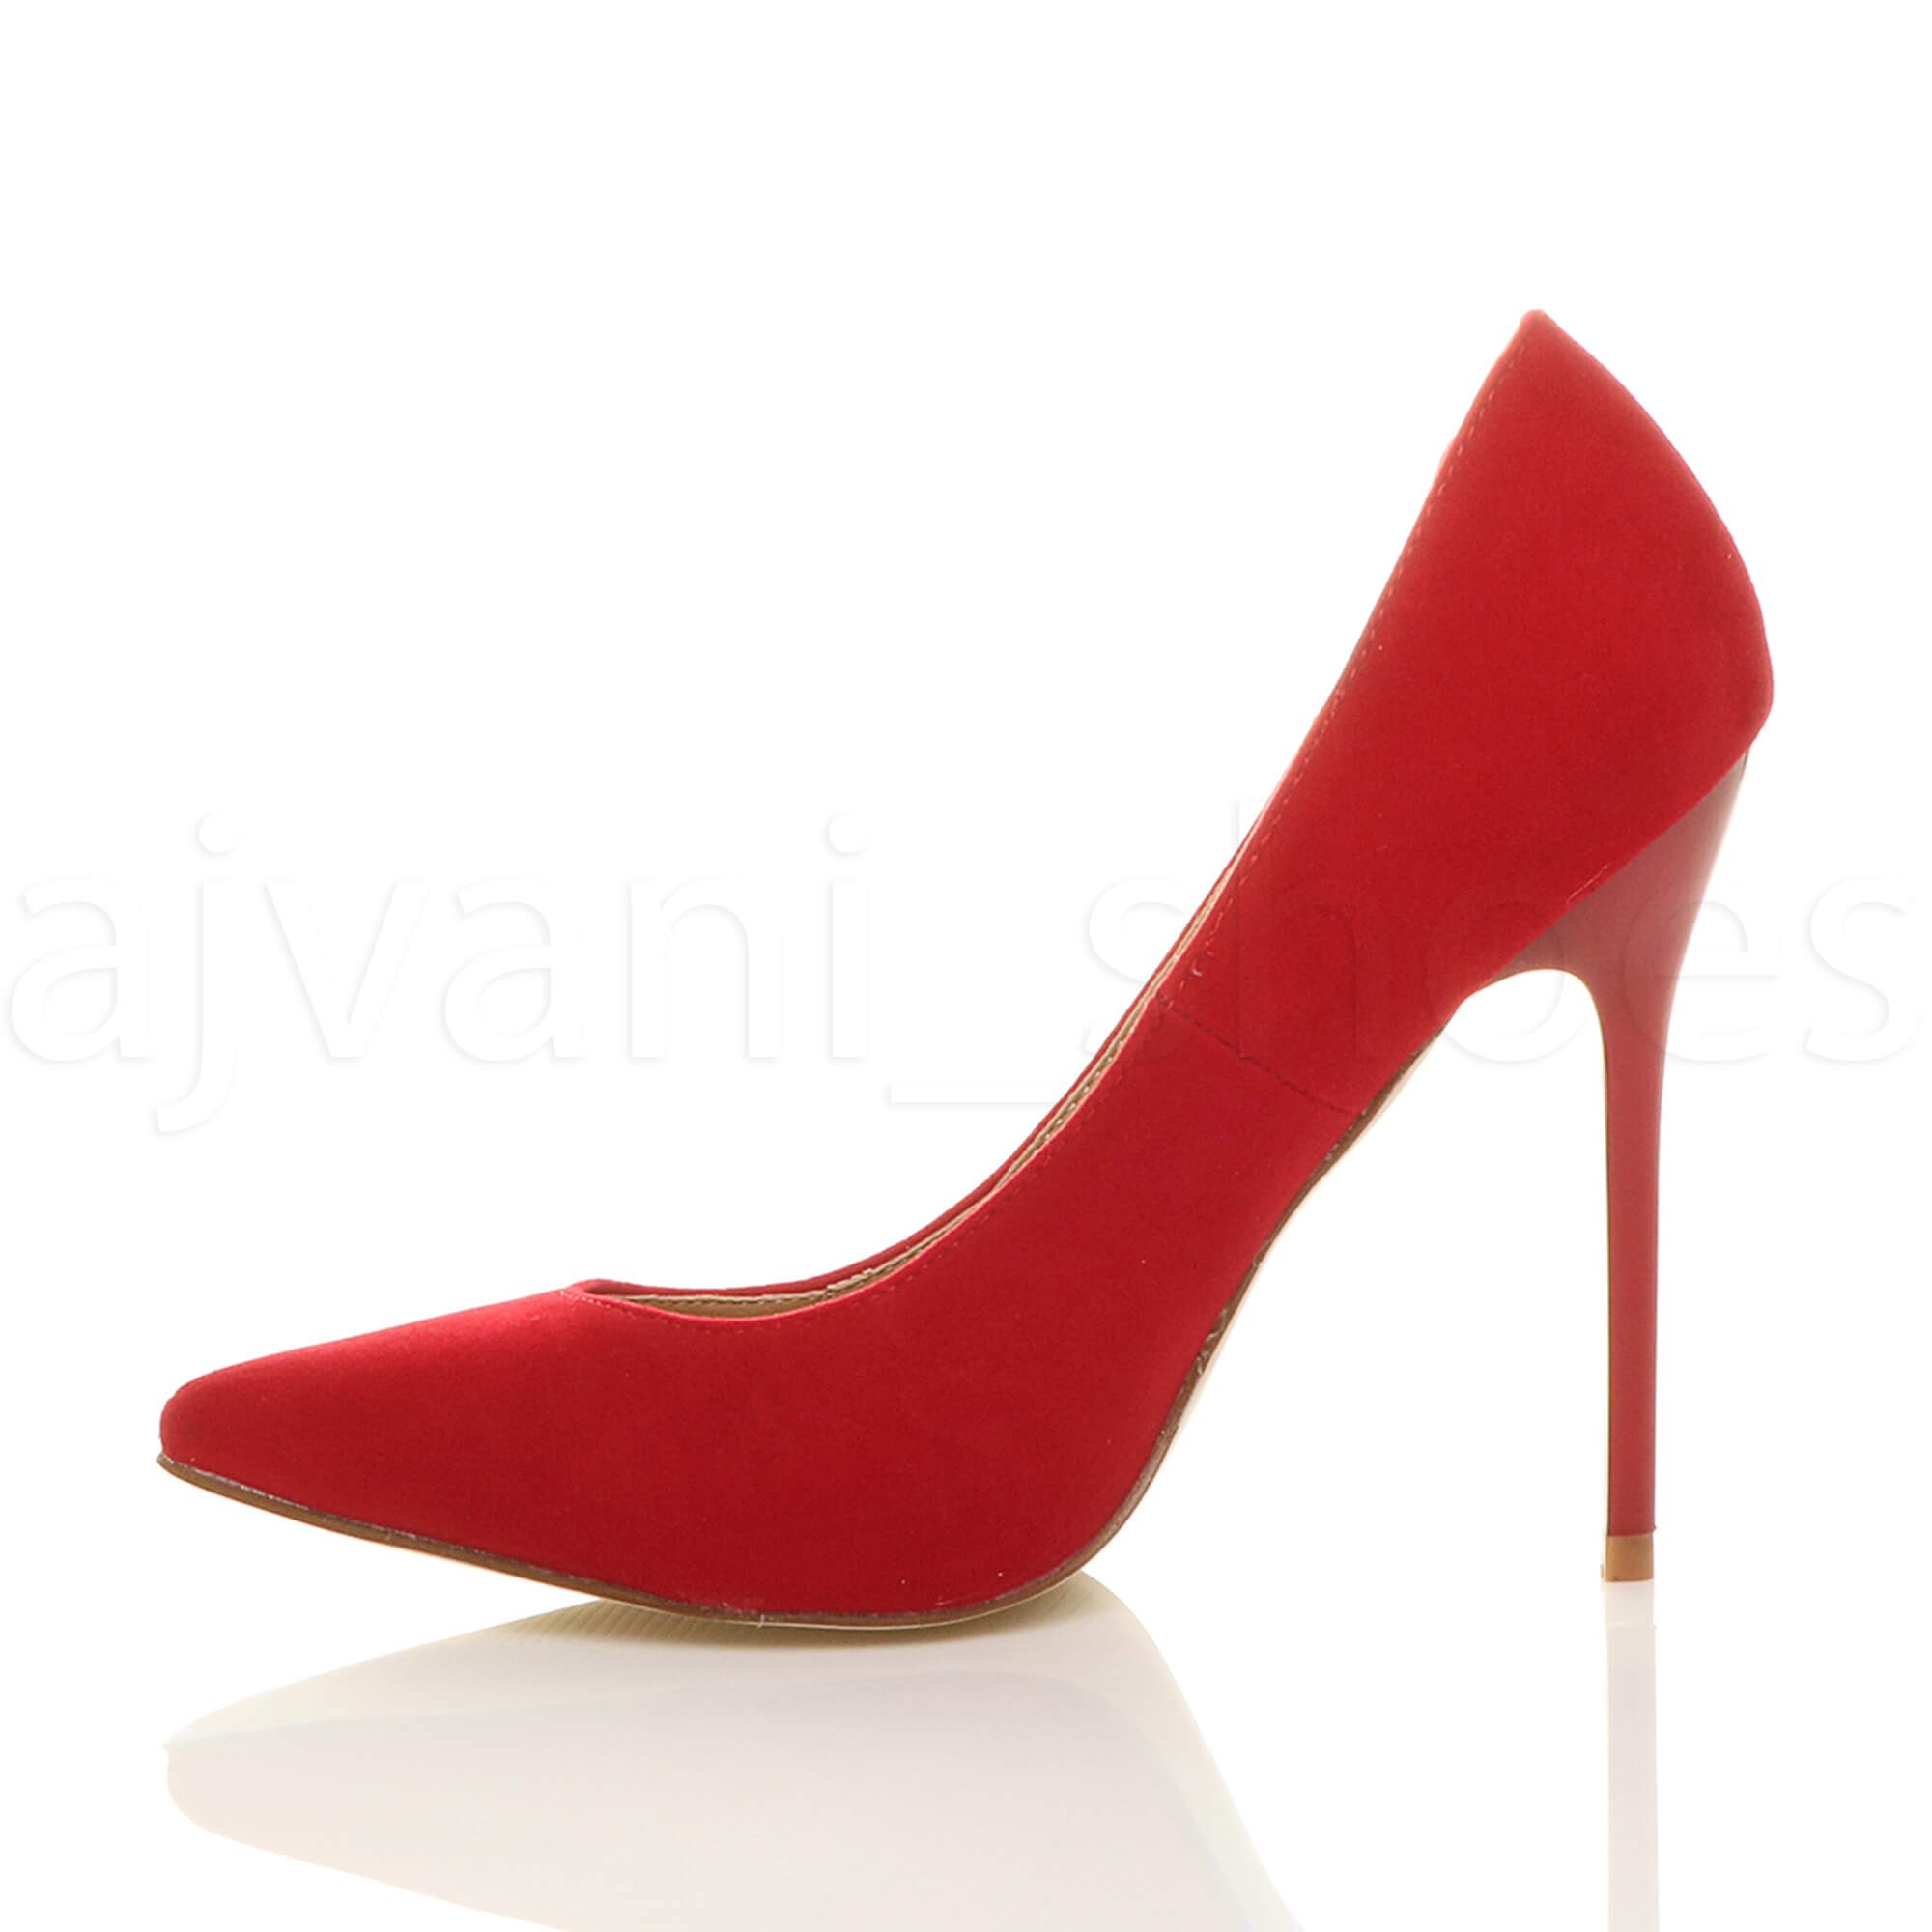 WOMENS-LADIES-HIGH-HEEL-POINTED-CONTRAST-COURT-SMART-PARTY-WORK-SHOES-PUMPS-SIZE thumbnail 186